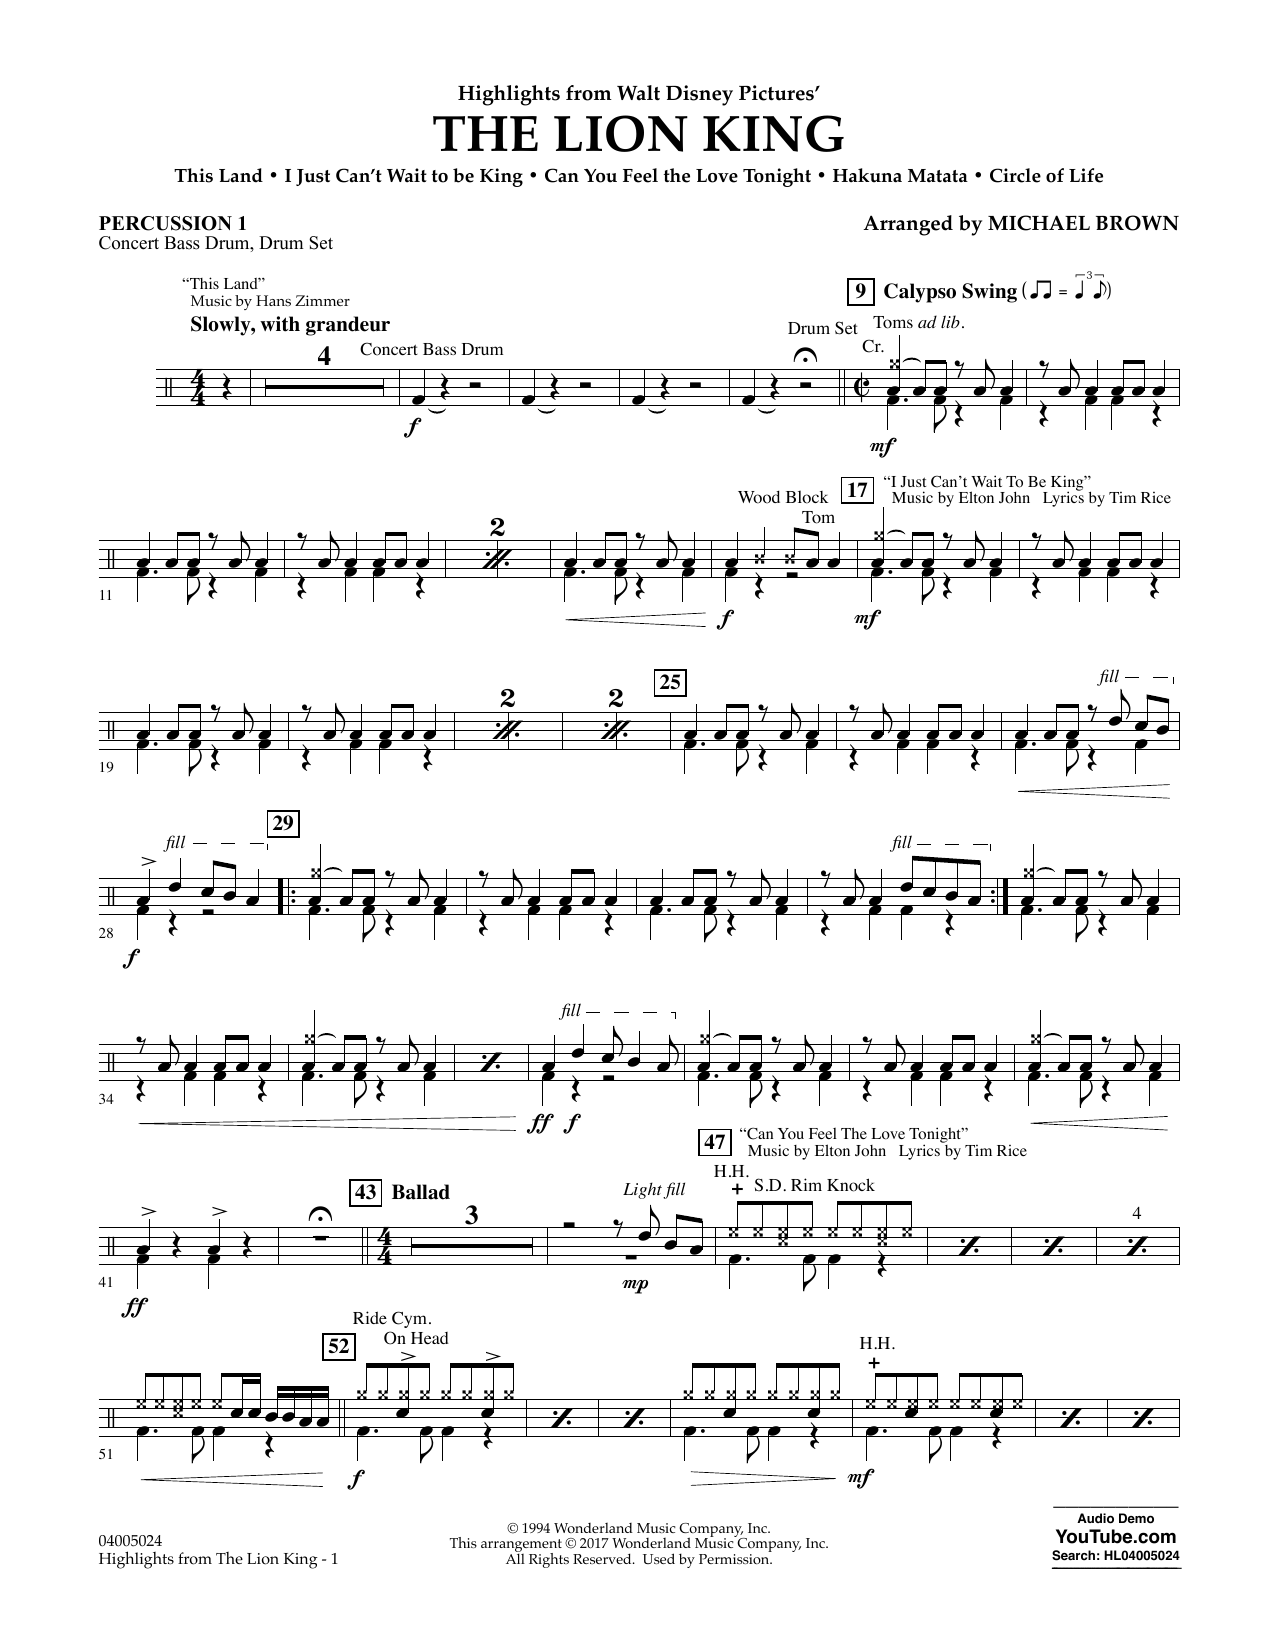 Highlights from The Lion King - Percussion 1 Sheet Music